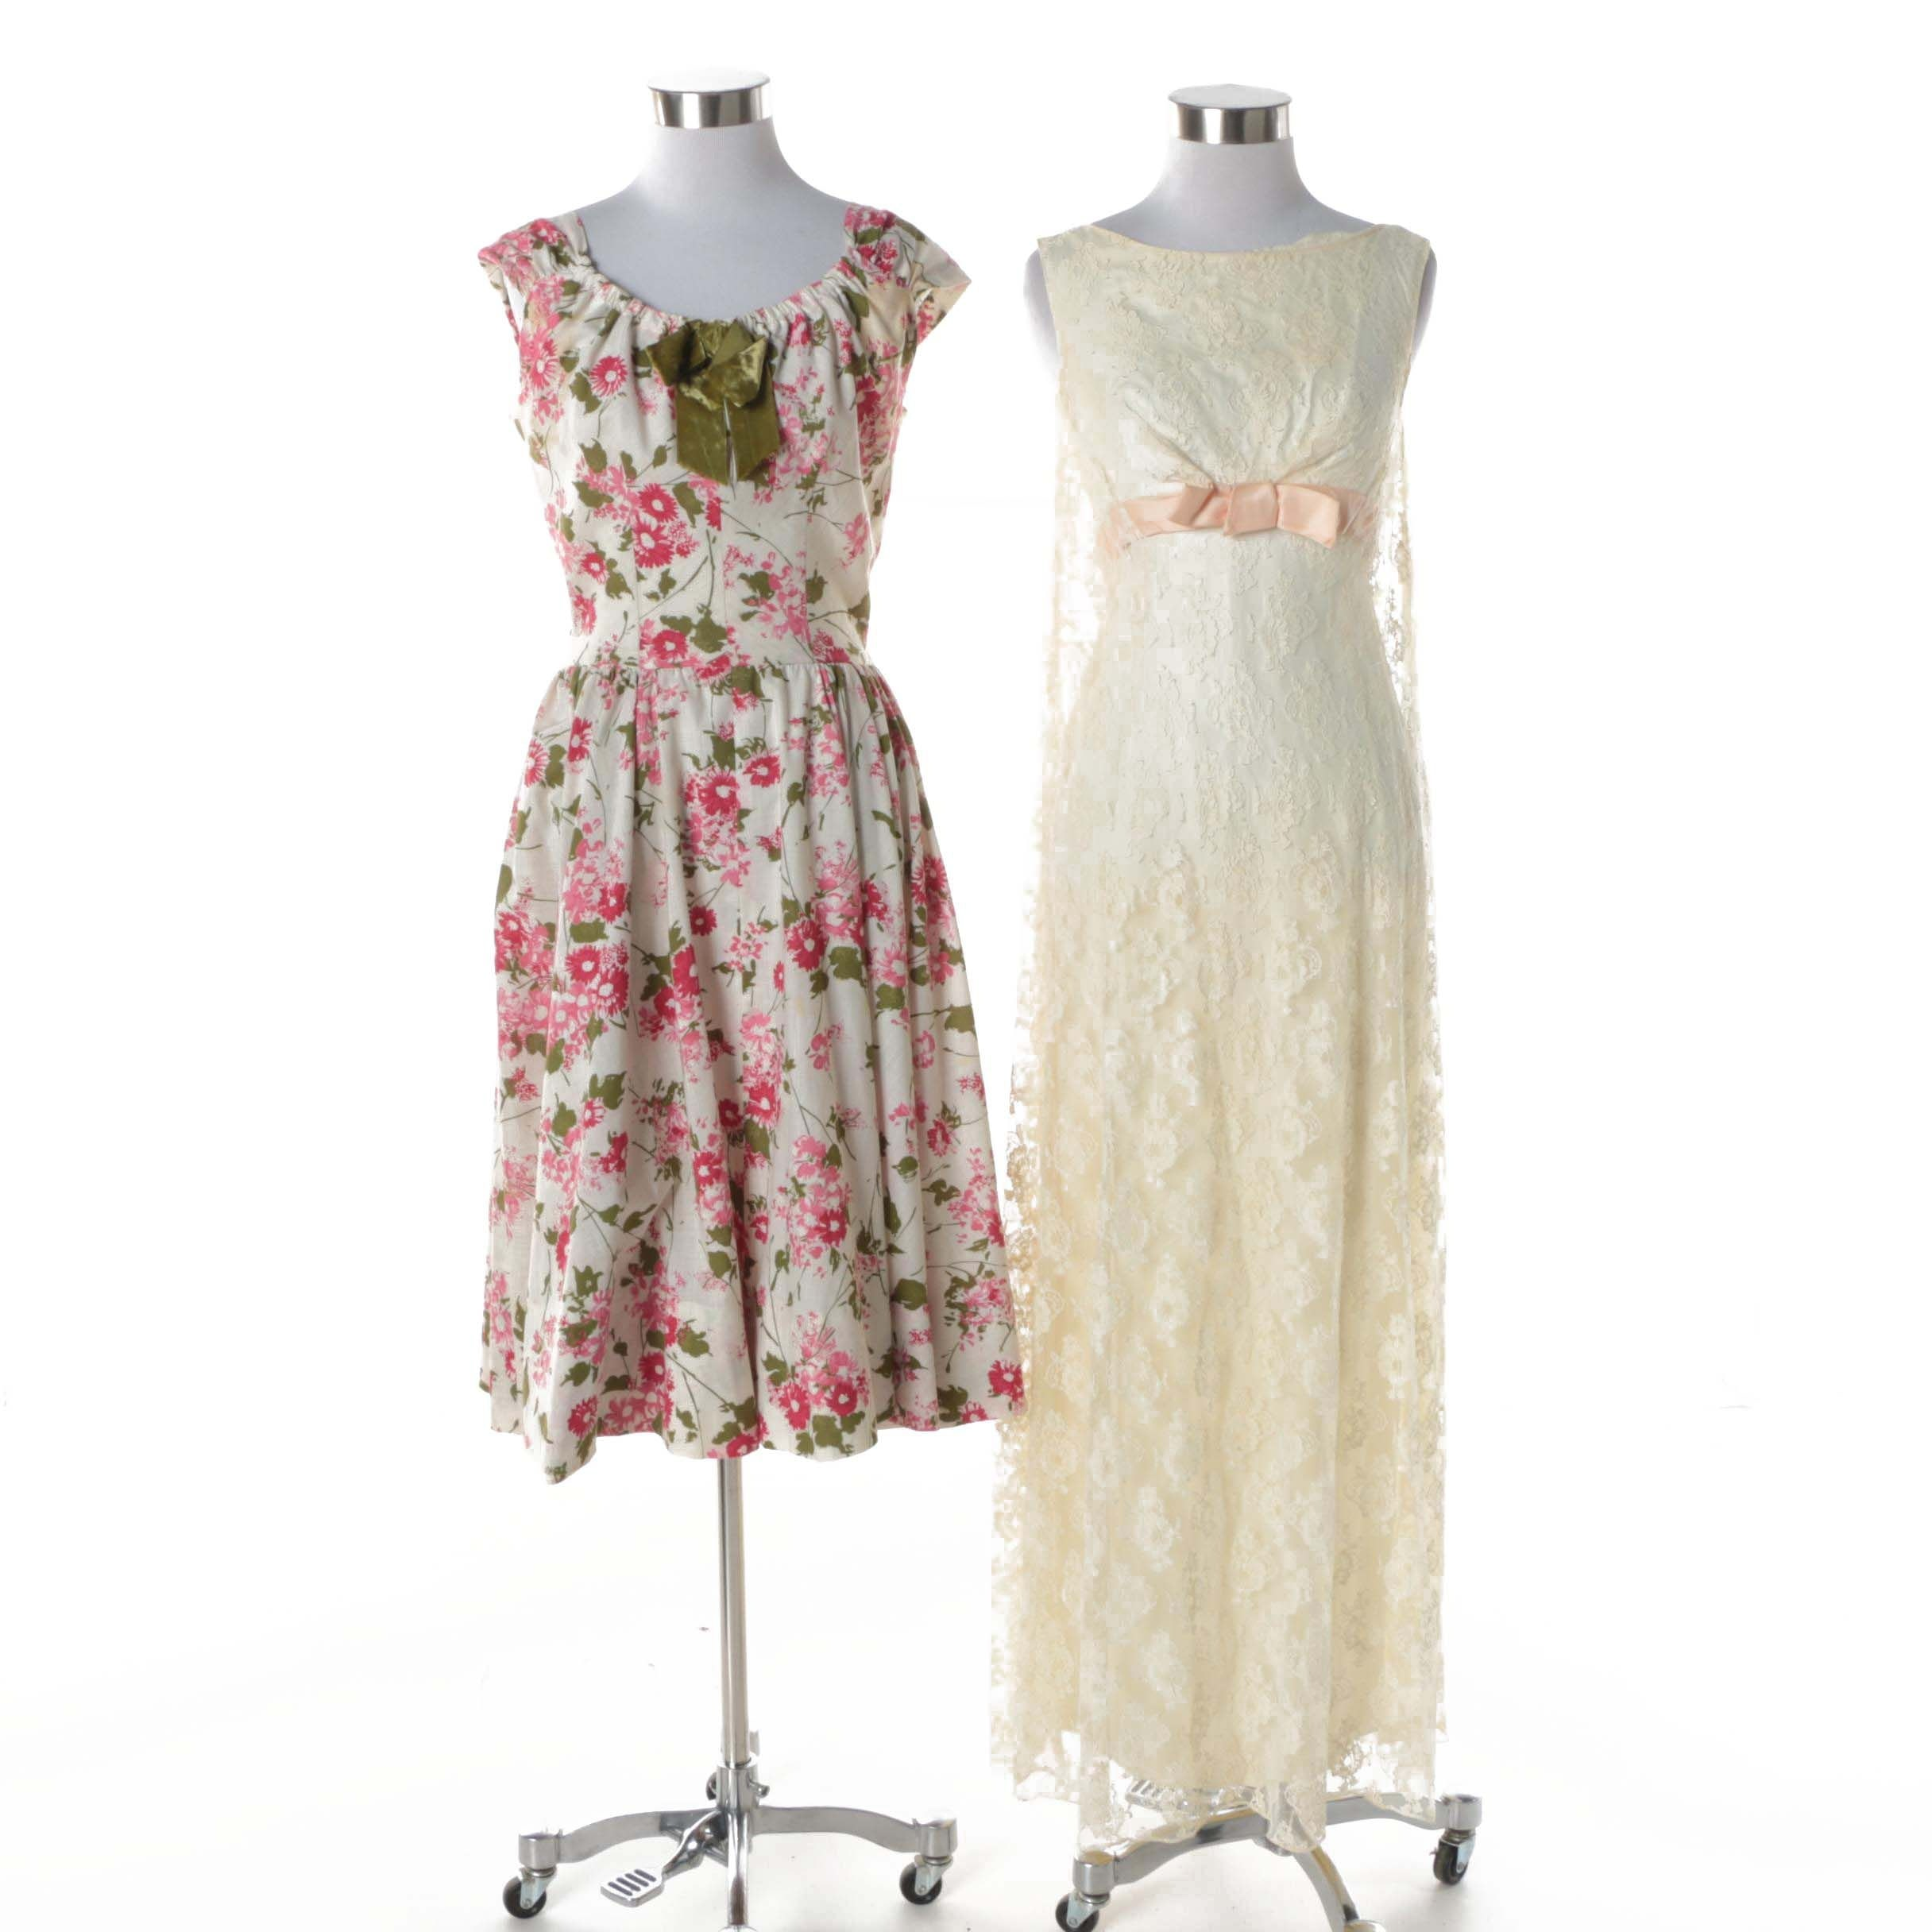 Circa 1960s Vintage Nona Floral Dress with Lace Overlay Sleeveless Gown